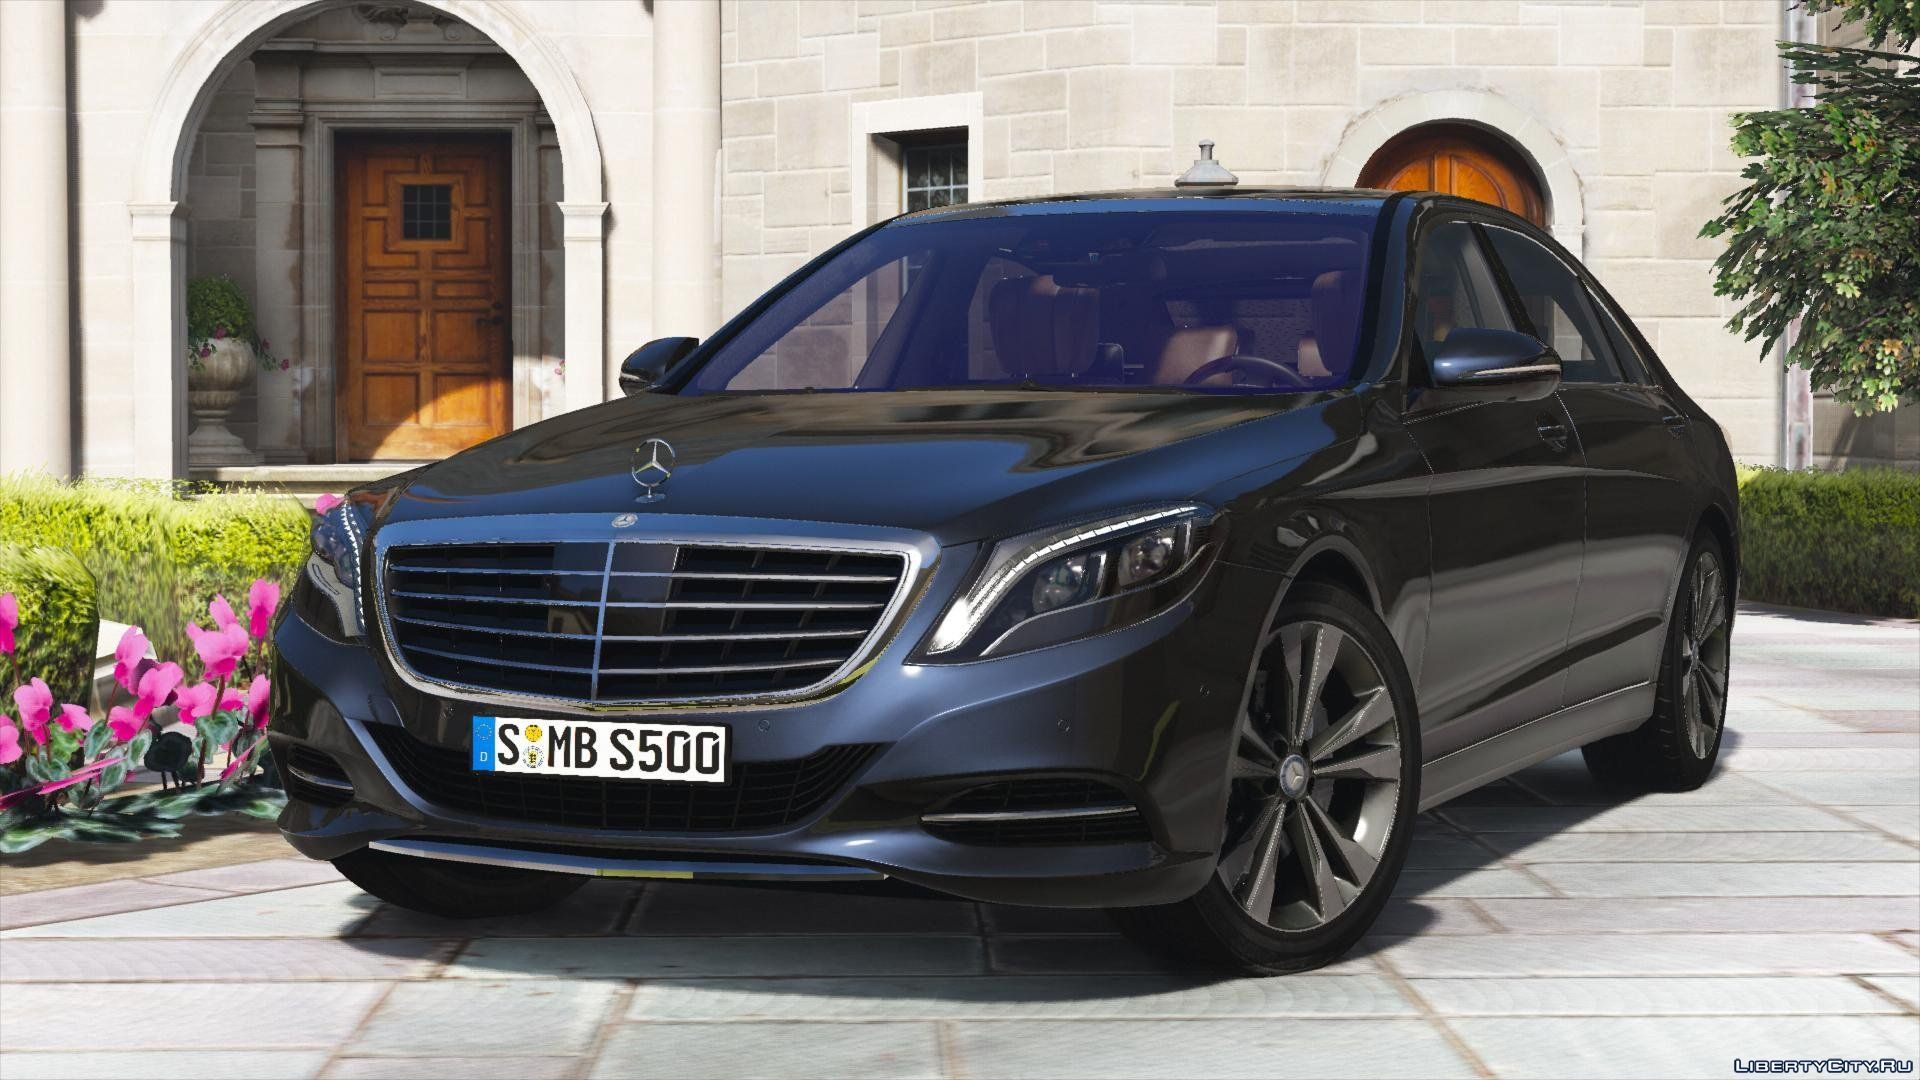 2014 mercedes benz s500 l s550 4matic w222 add on tuning for gta 5. Black Bedroom Furniture Sets. Home Design Ideas